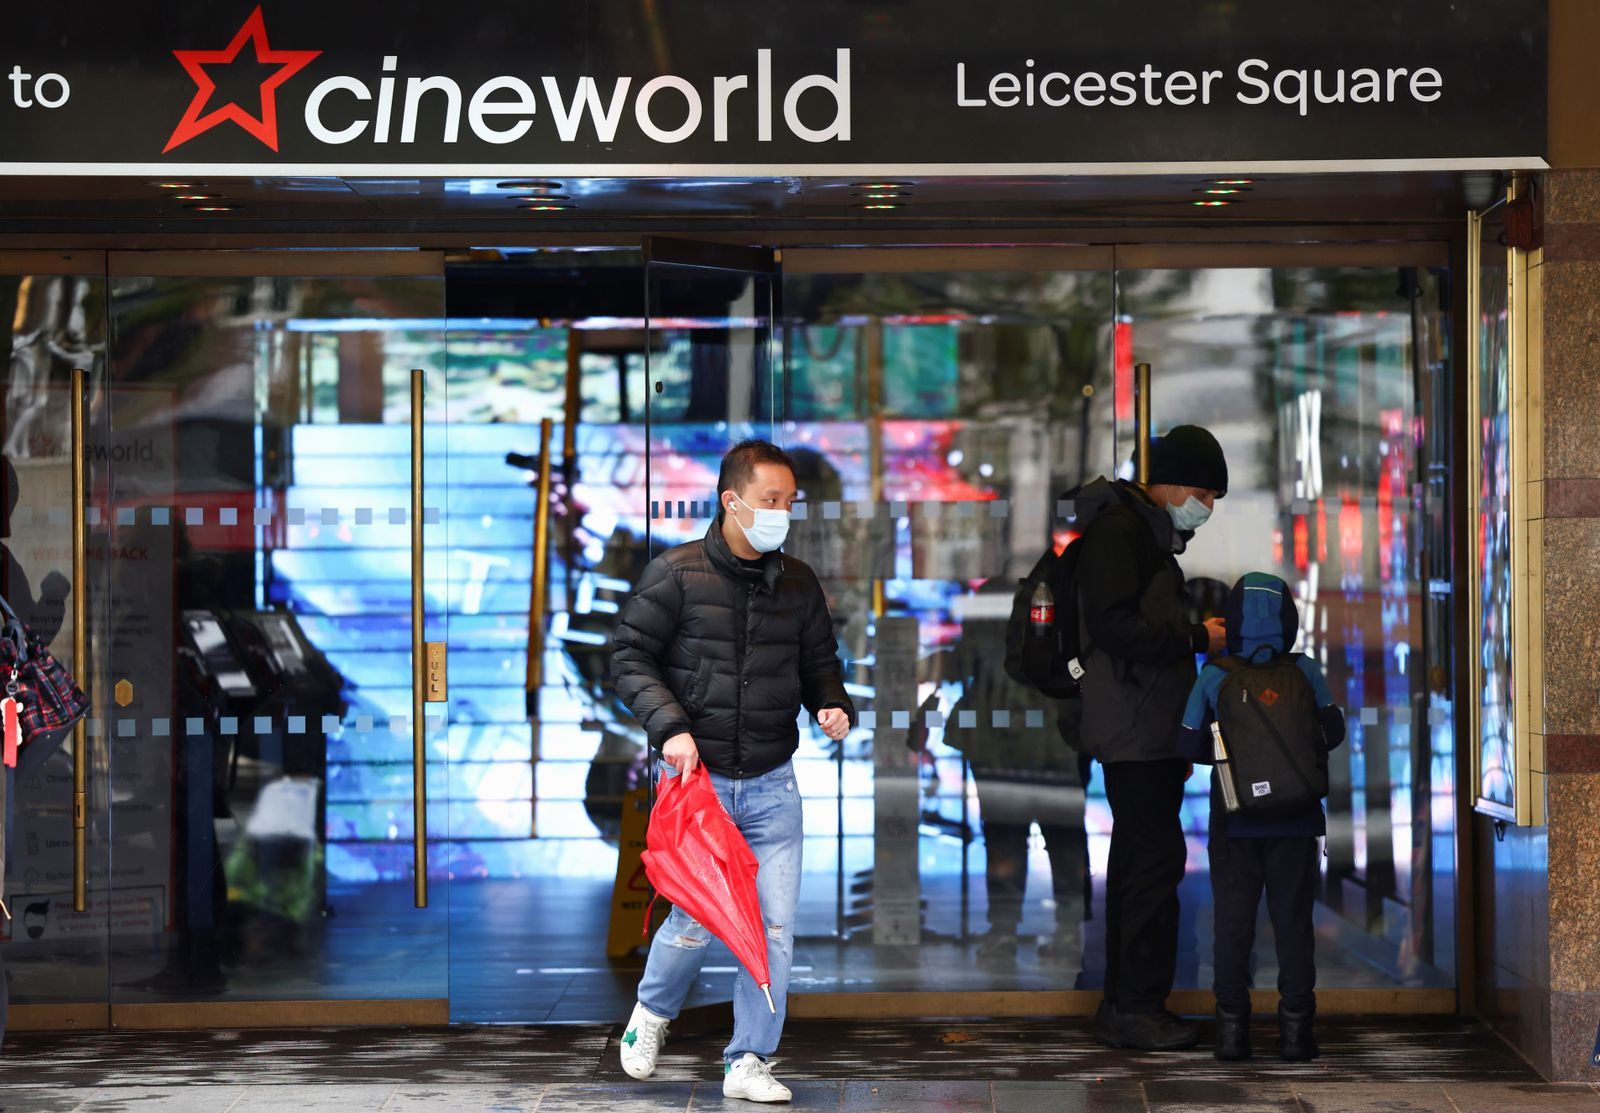 People are seen at a Cineworld in Leicester?s Square in London